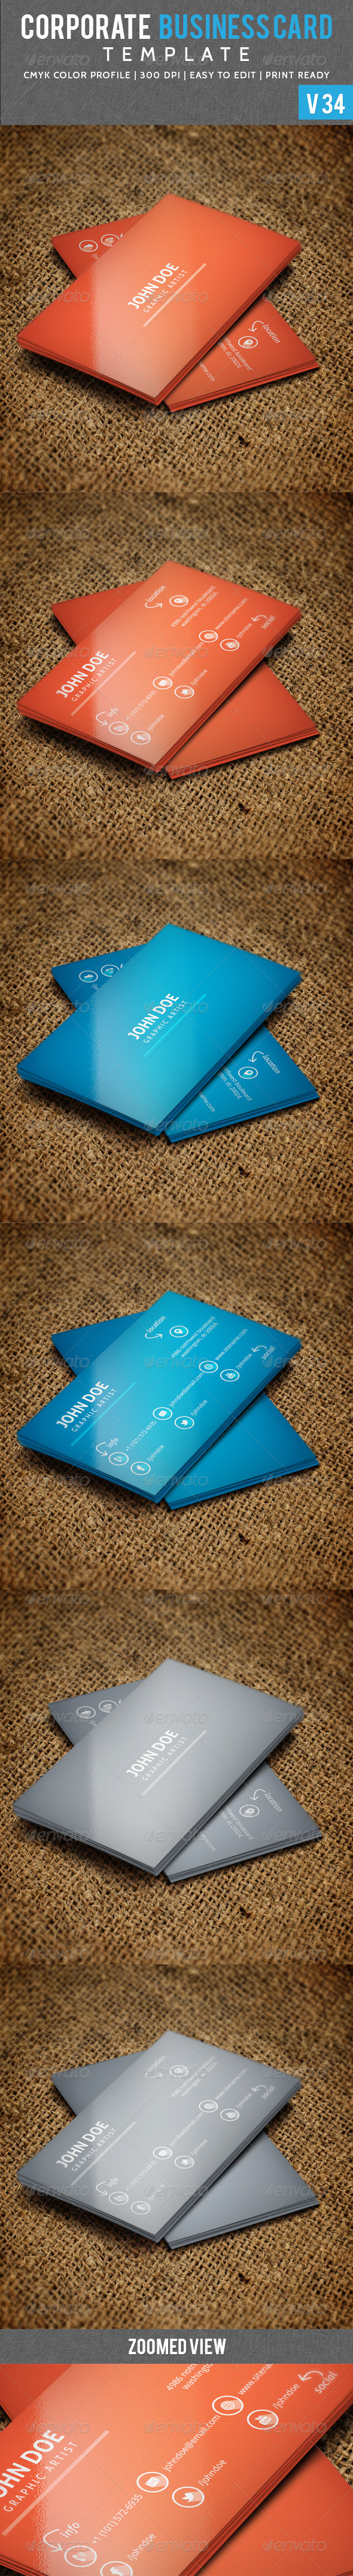 GraphicRiver Long Shaded Corporate Business Card V 34 5904174